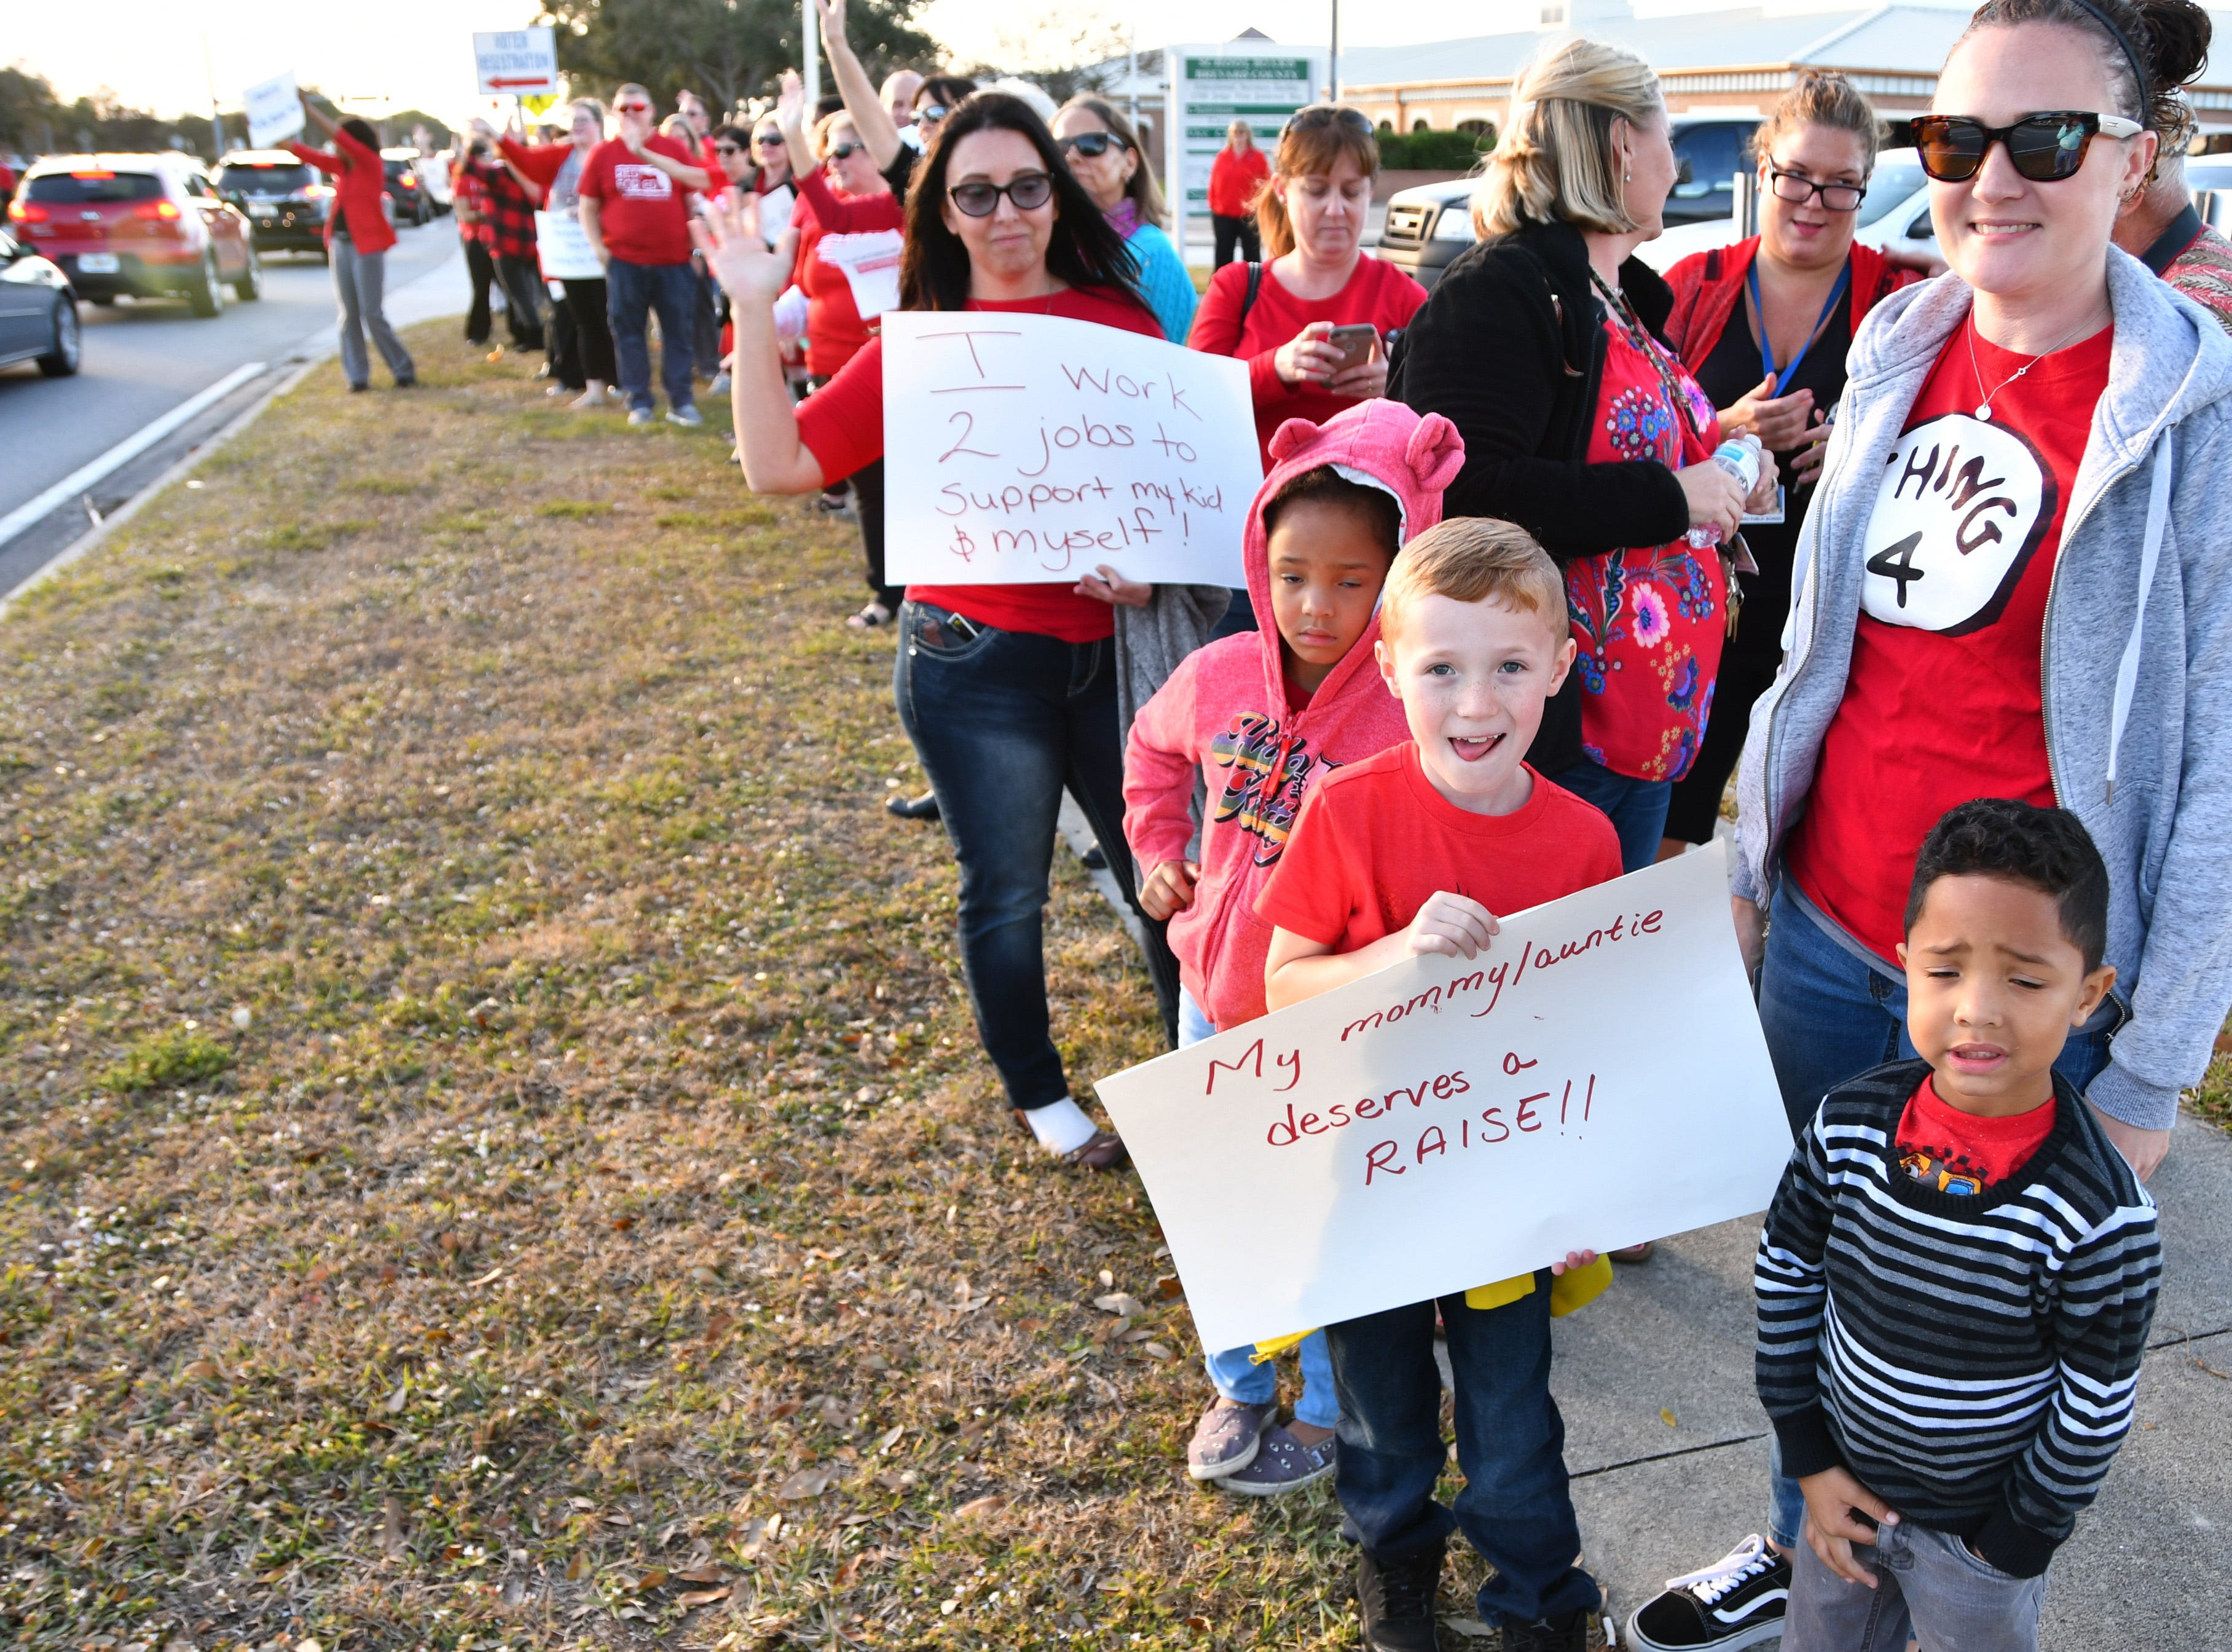 Hundreds of the Brevard Federation of Teachers union members picketed outside the school board headquarters to protest low wages before Tuesday's school board meeting. Negotiations over raises and working conditions are currently at impasse. The teachers entered the meeting en masse as the meeting started.